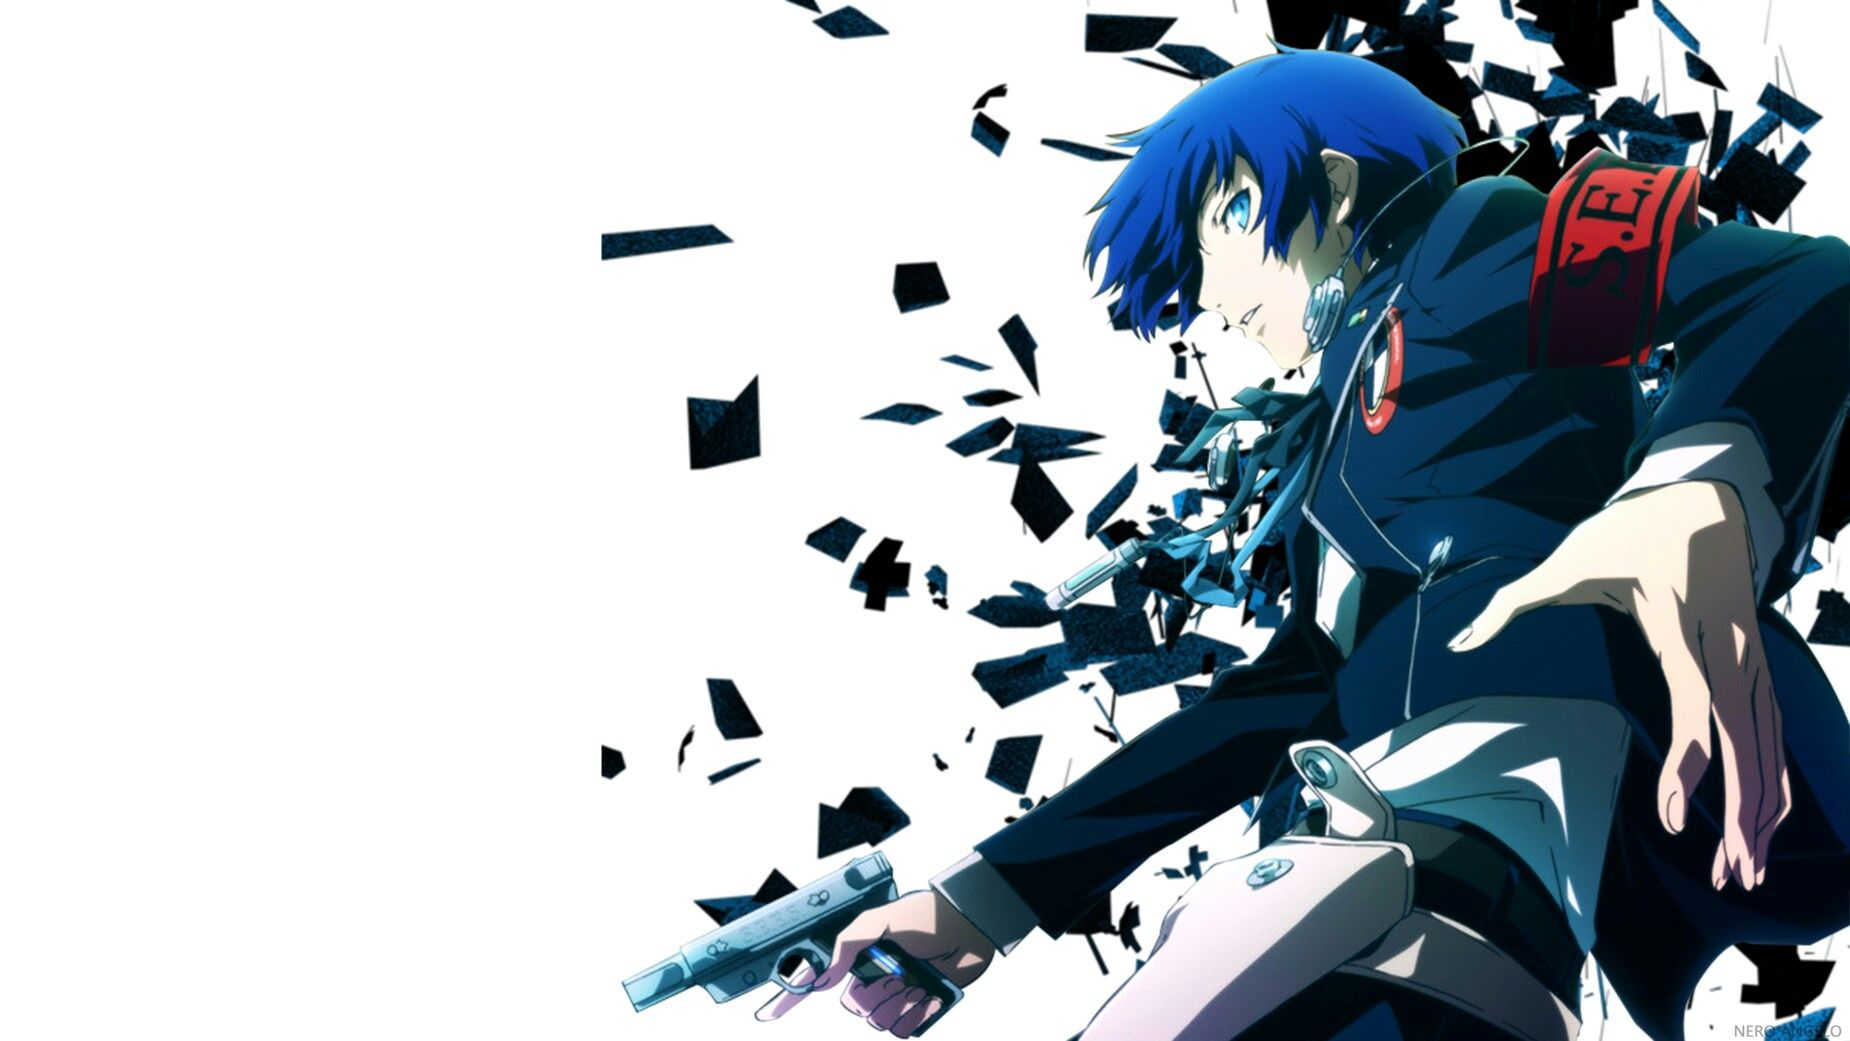 Persona 3 The movie Indie games, Retro gaming, Anime